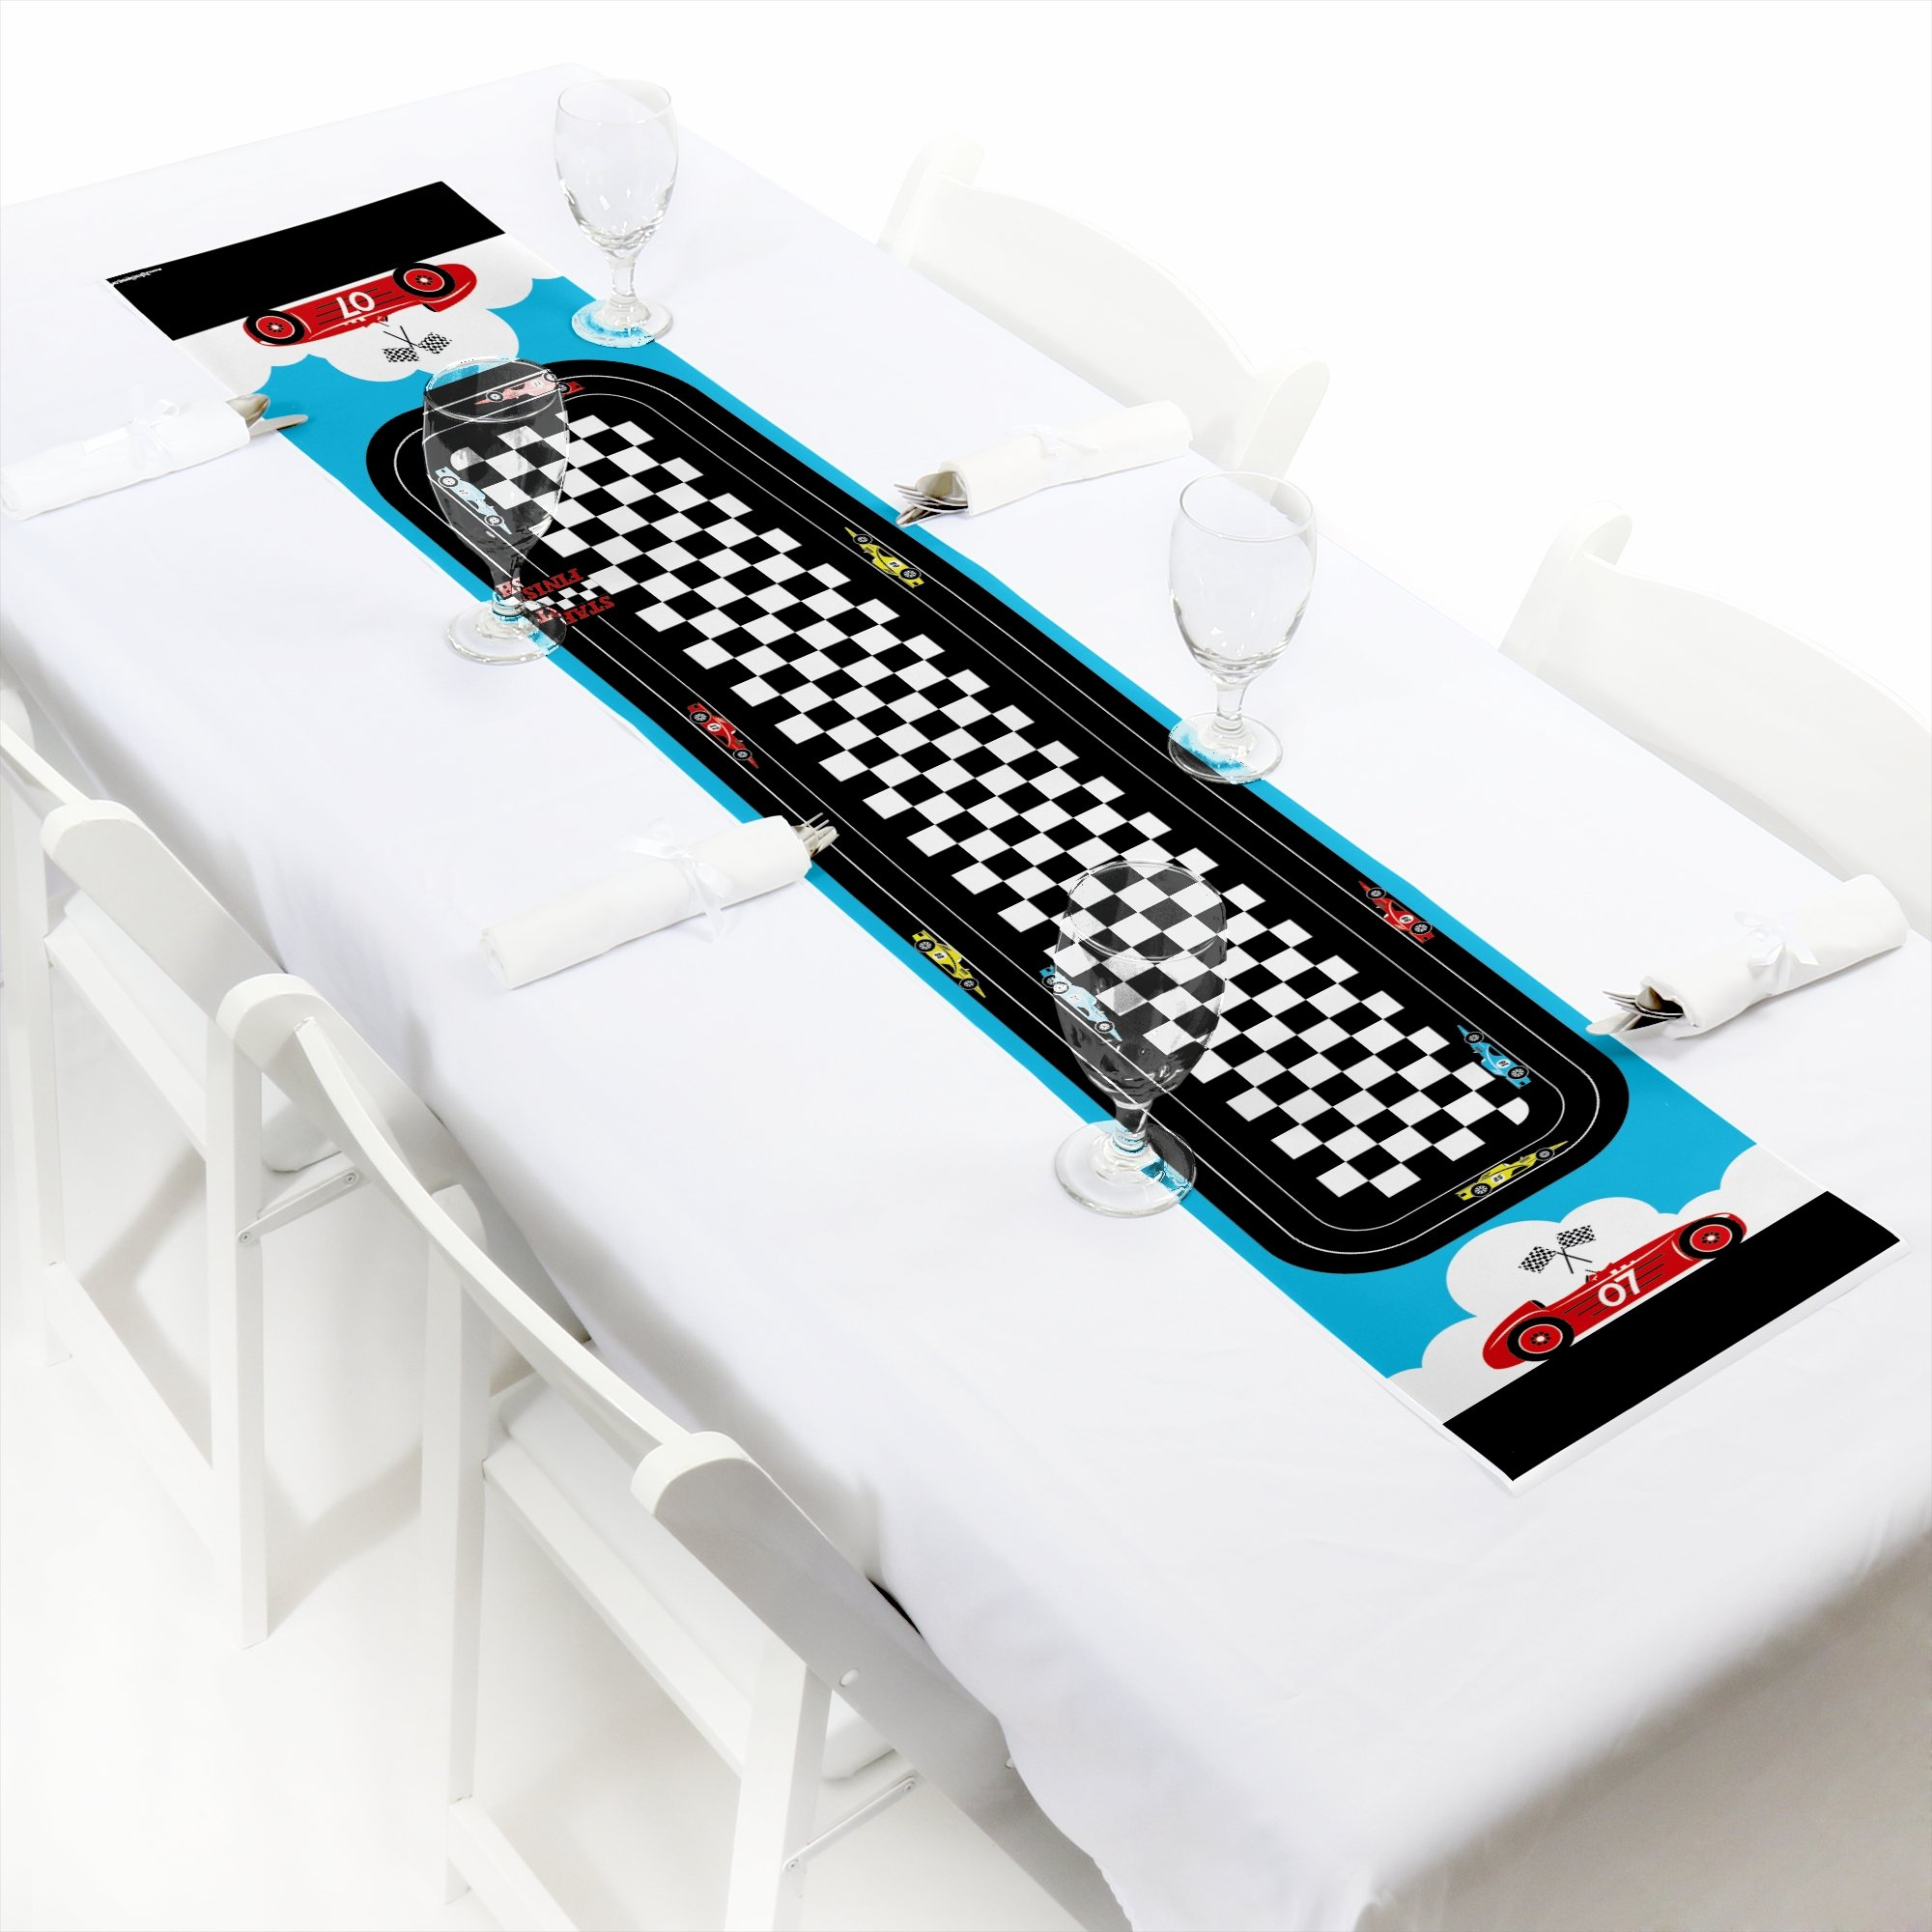 Big Dot of Happiness Let's Go Racing - Racecar - Petite Race Car Birthday Party or Baby Shower Paper Table Runner - 12 x 60 inches